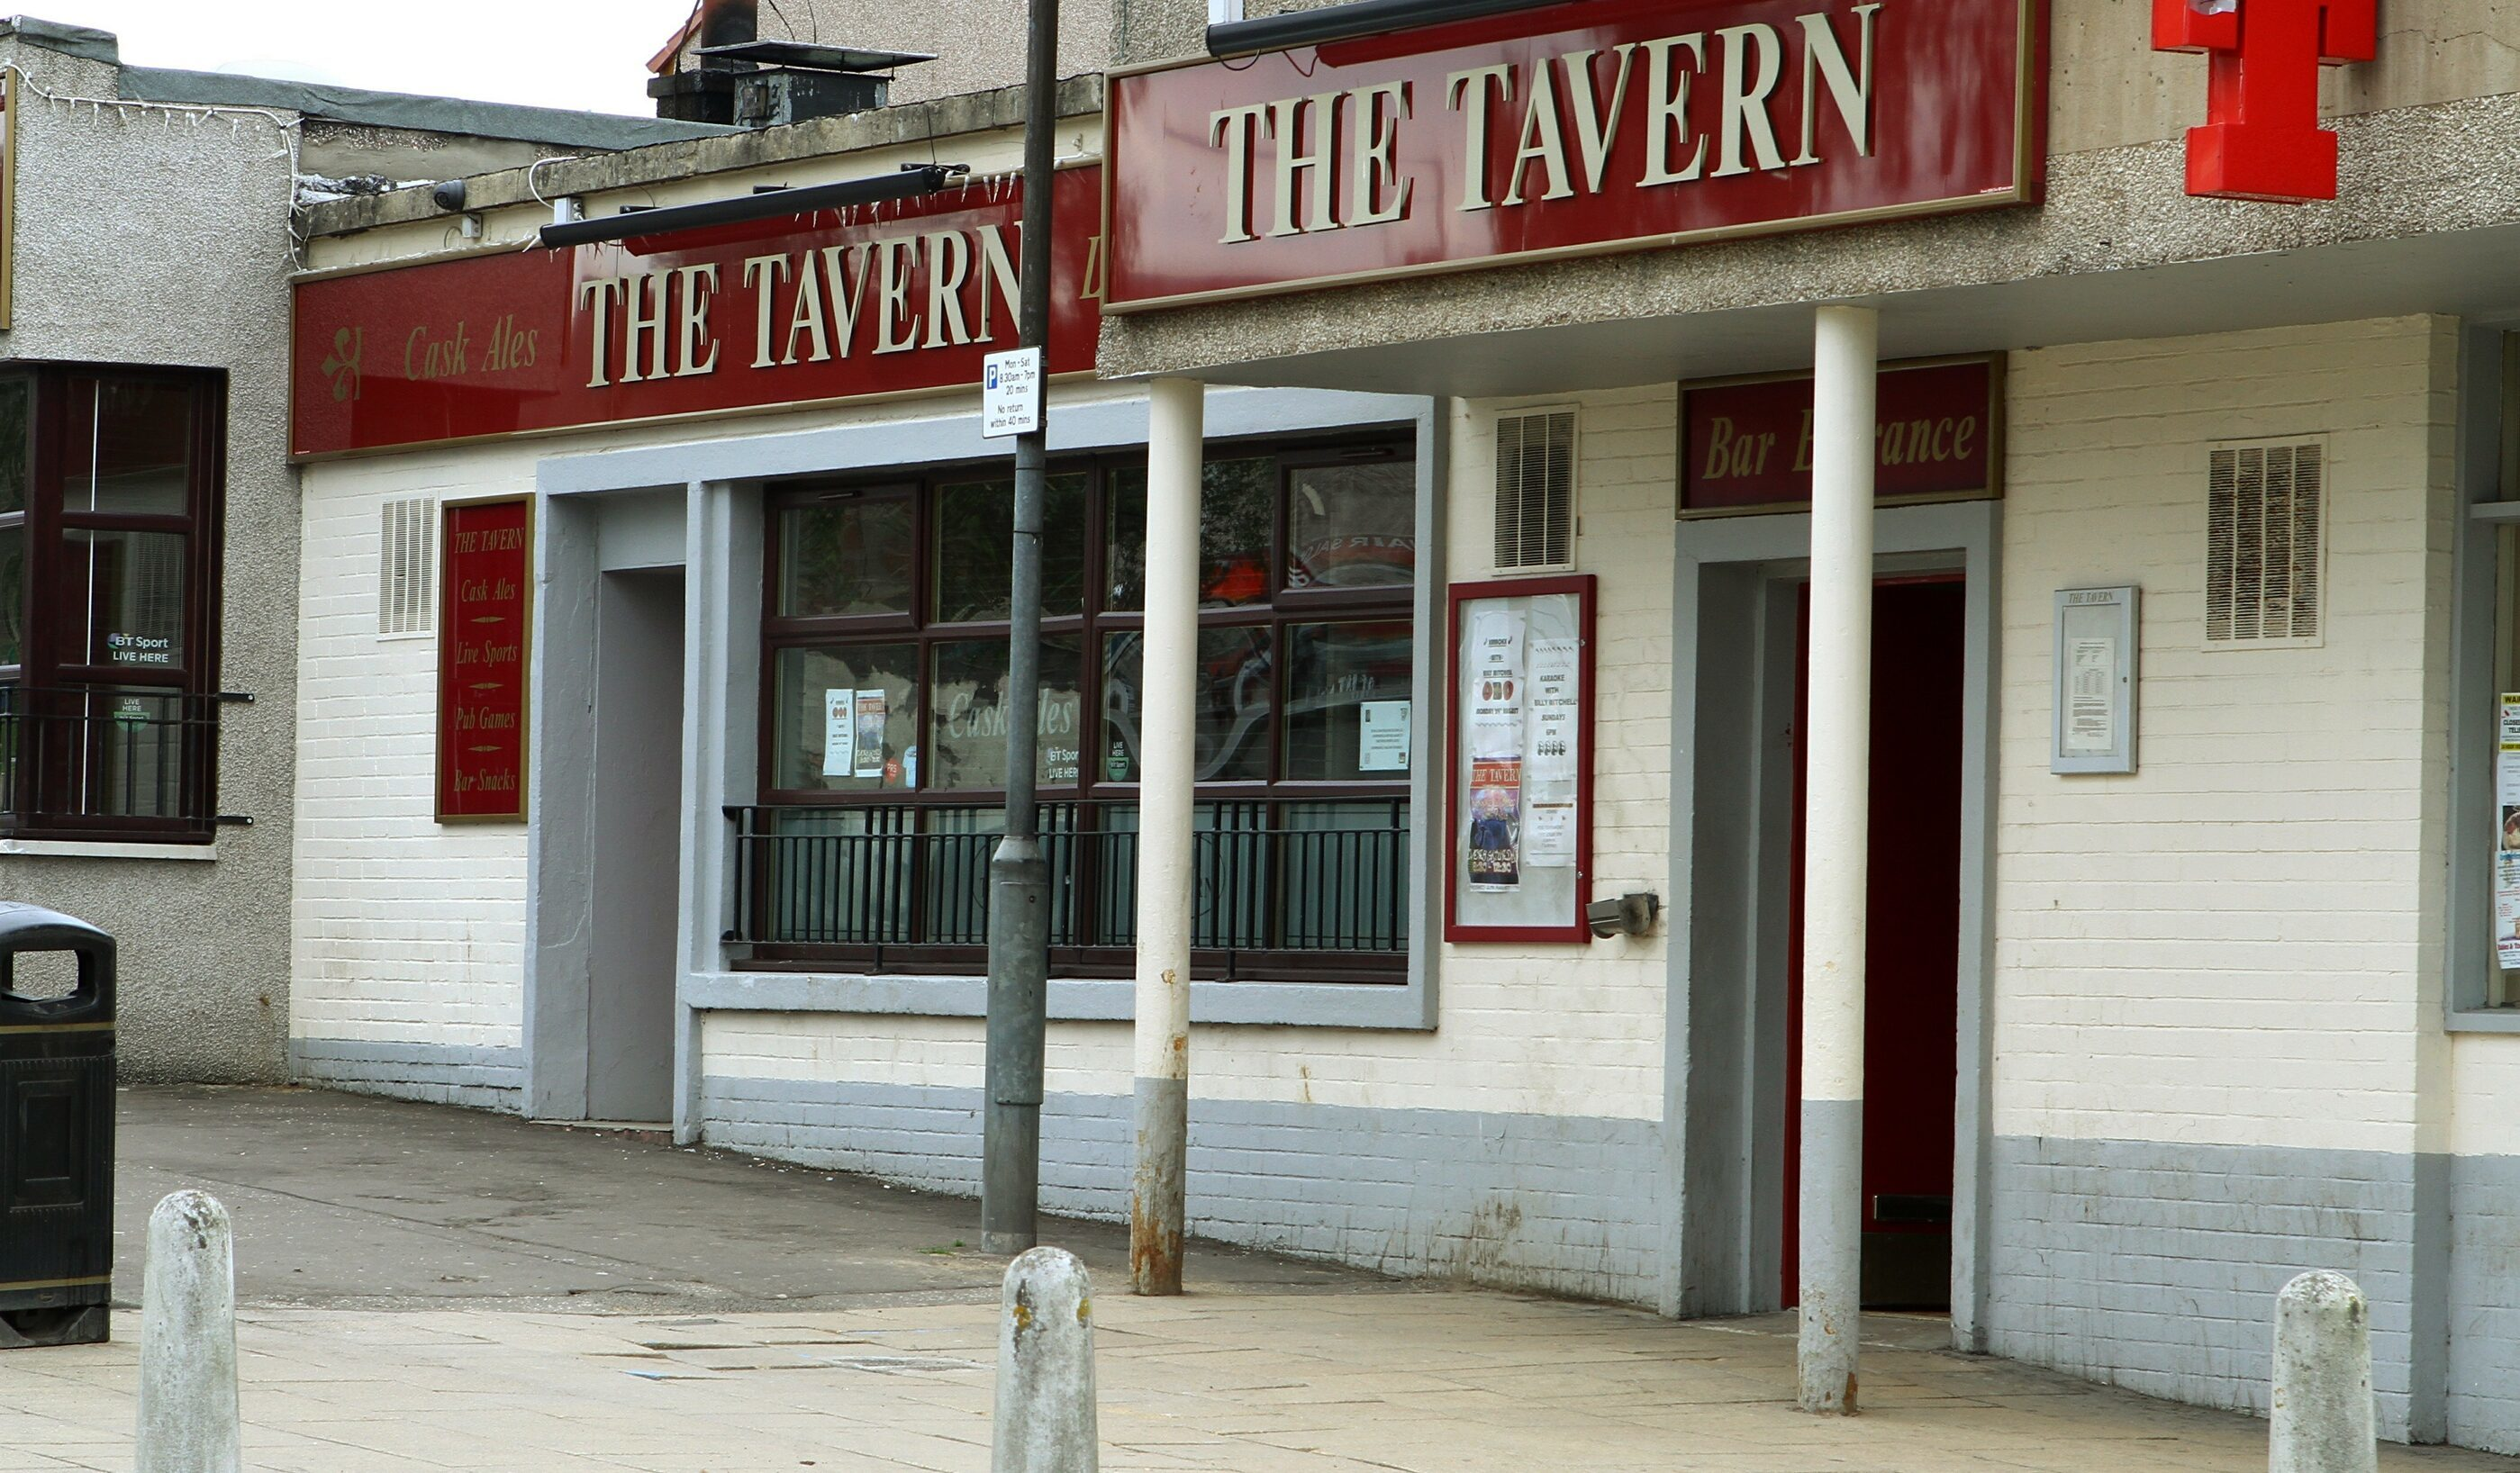 The Tavern in Templehall,